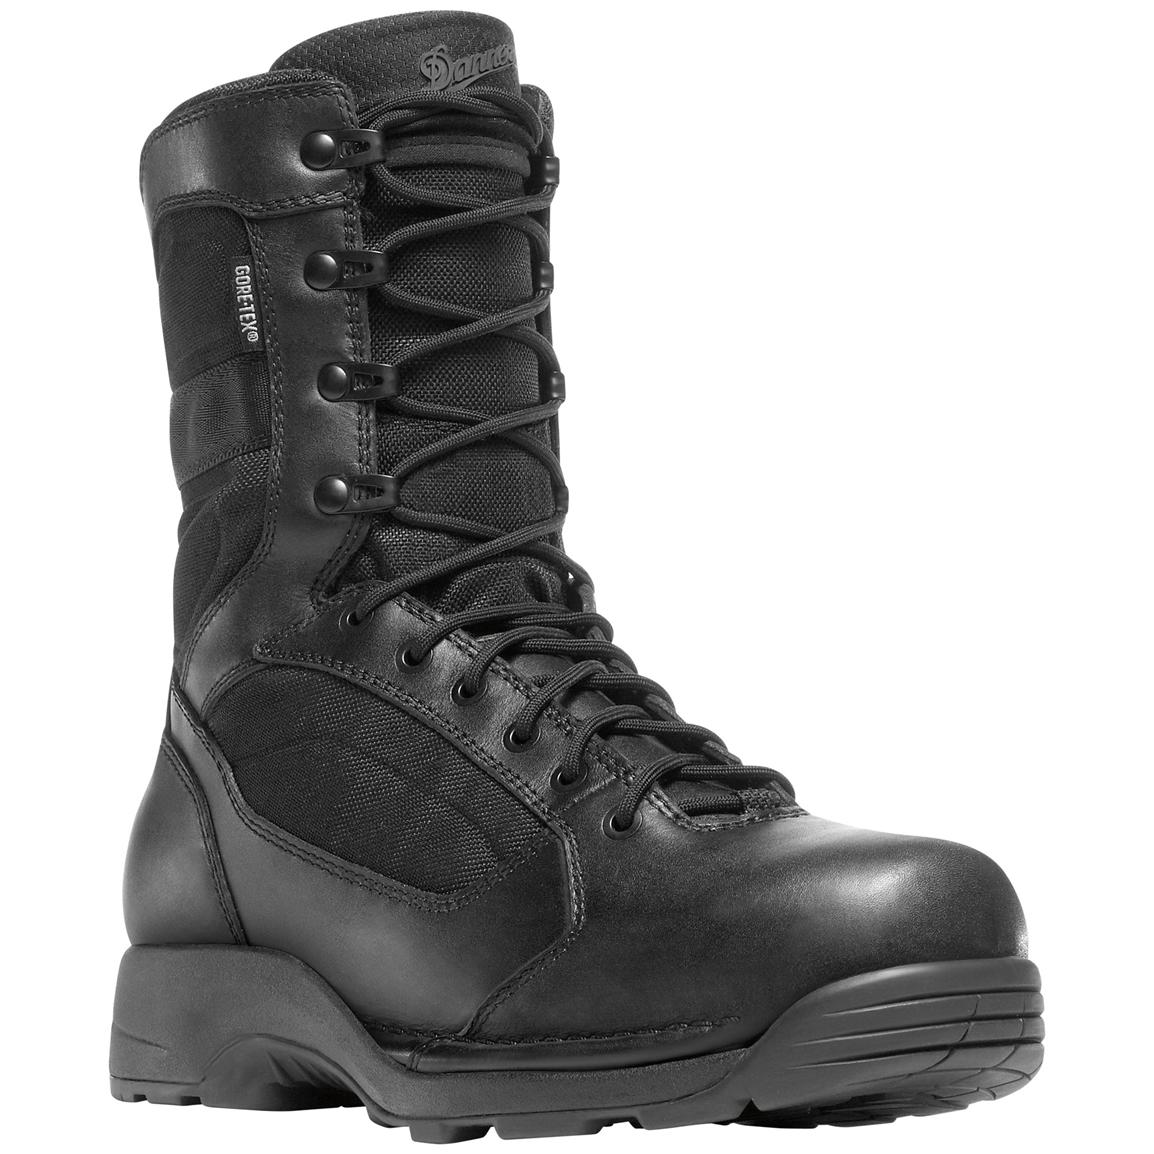 Men's 8 inch Danner® Striker® Torrent GTX® Side-zip Uniform Boots, Black